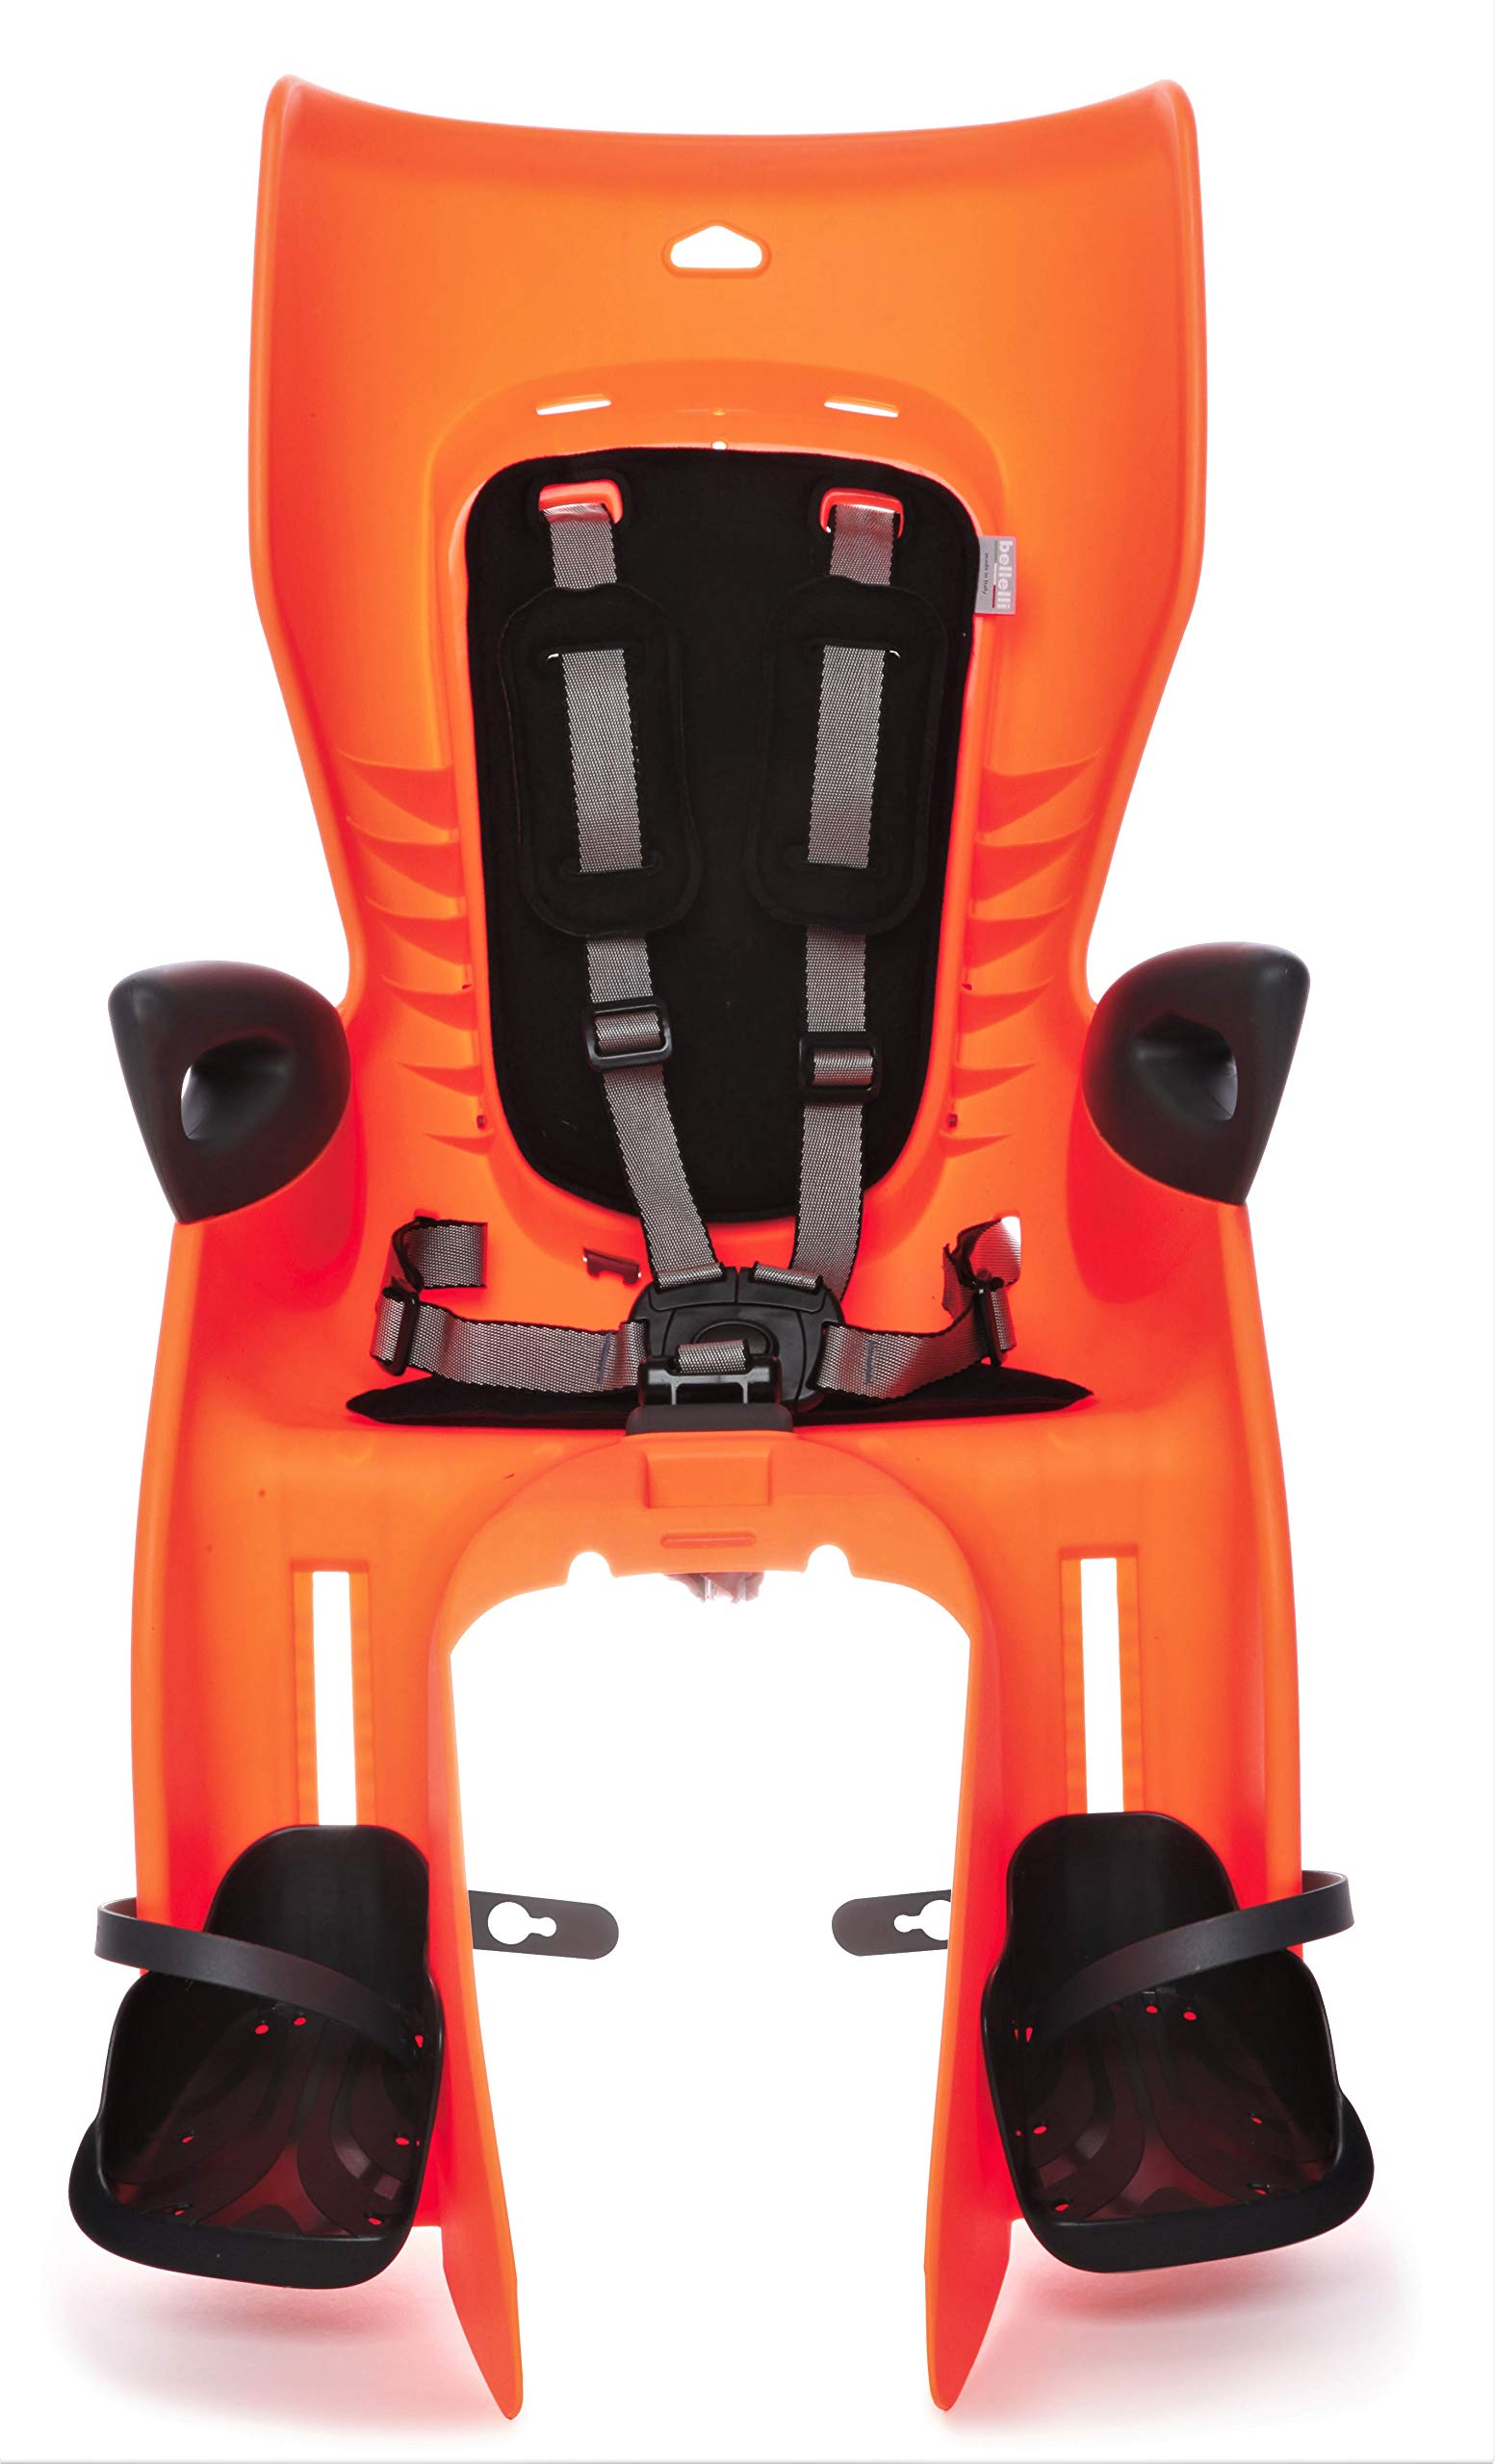 Bellelli Child Bike Seat, Kids Bike Seat Carrier, Child Seat for Bikes, Summer, Clamp with Seat Stay Mount, Orange, Made in Italy